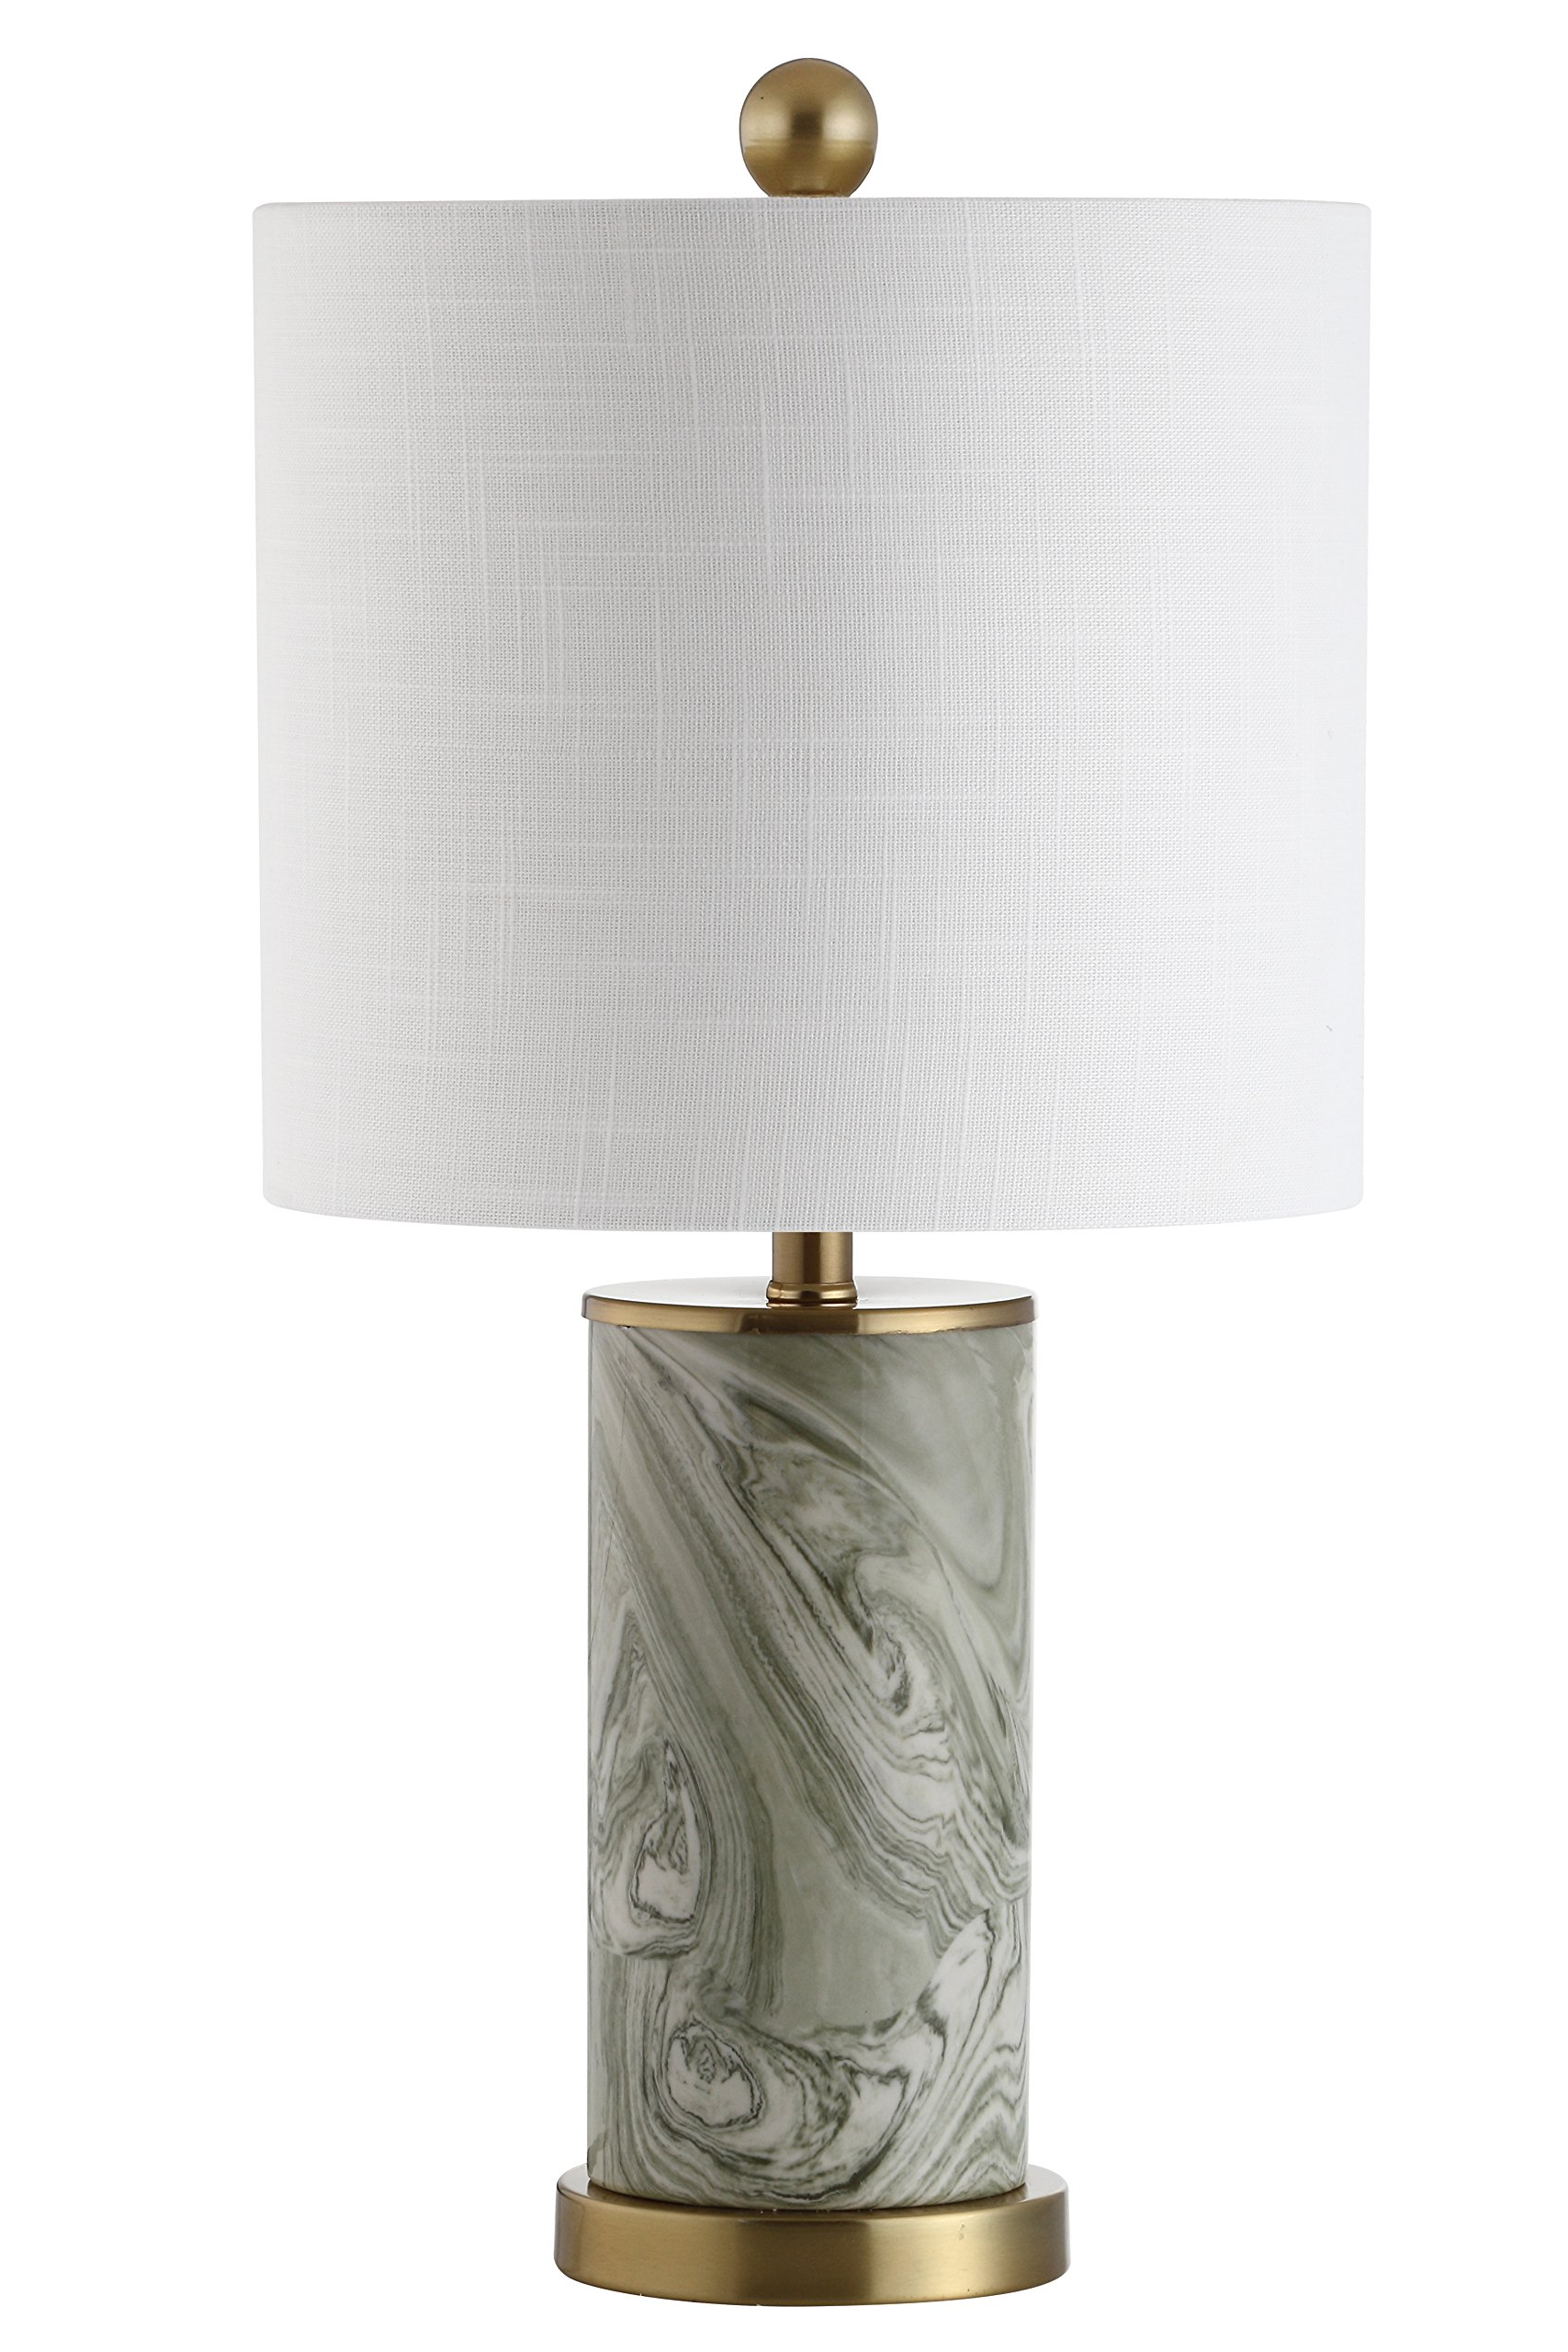 Jonathan Y JYL3012A Table Lamp, 10'' x 20.5'' x 10'', Gray/Green with White Shade